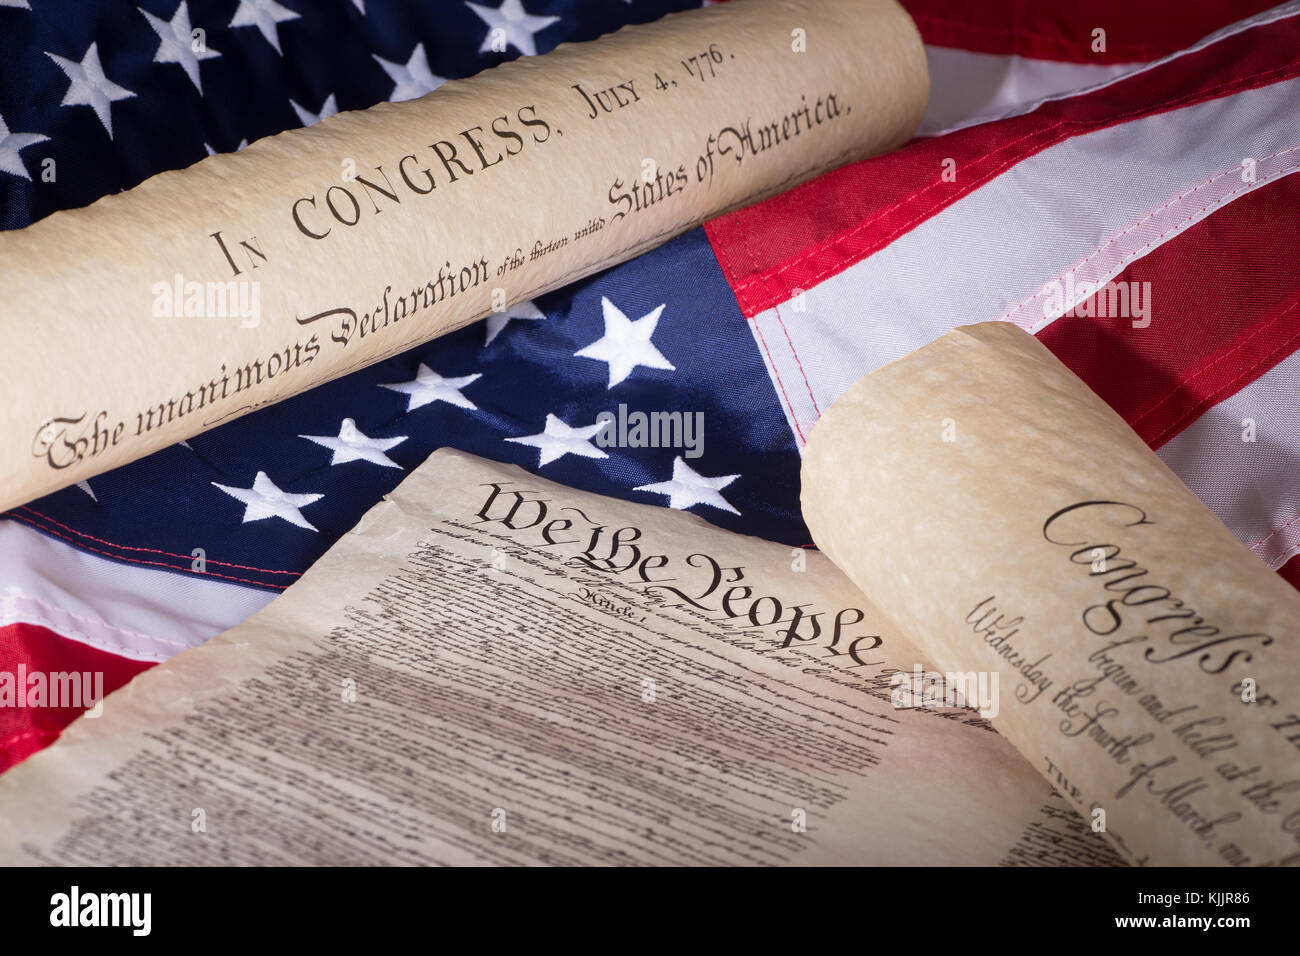 an introduction to the flag desecration amendment Freedom of speech and the flag anti-desecration amendment: antinomies of constitutional choice william w van alstyne introduction on june 21, 1989, in texas v.